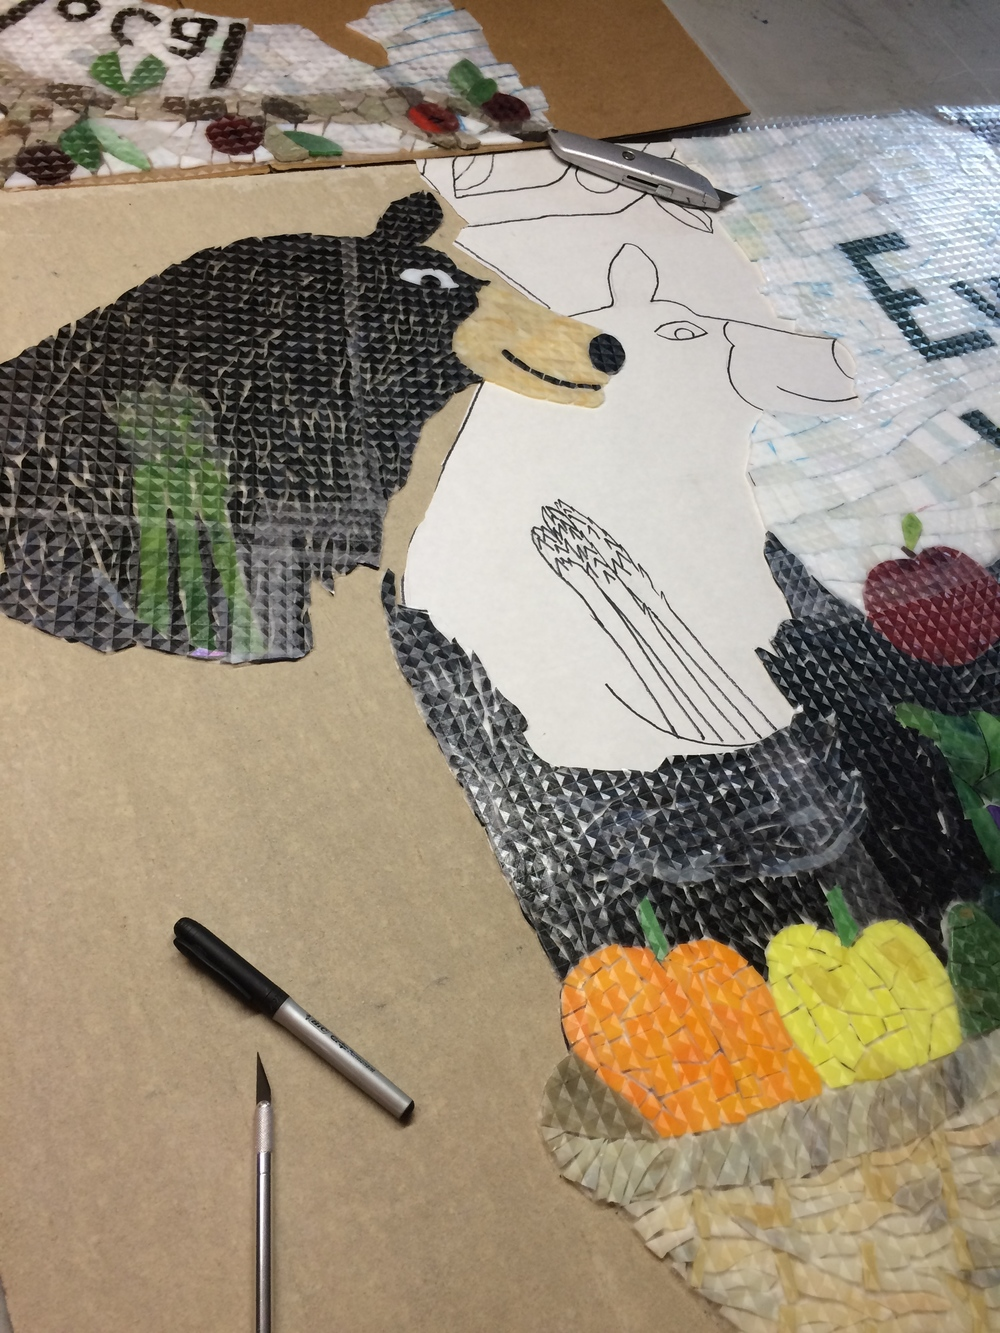 Cutting the mosaic into sections like puzzle pieces.